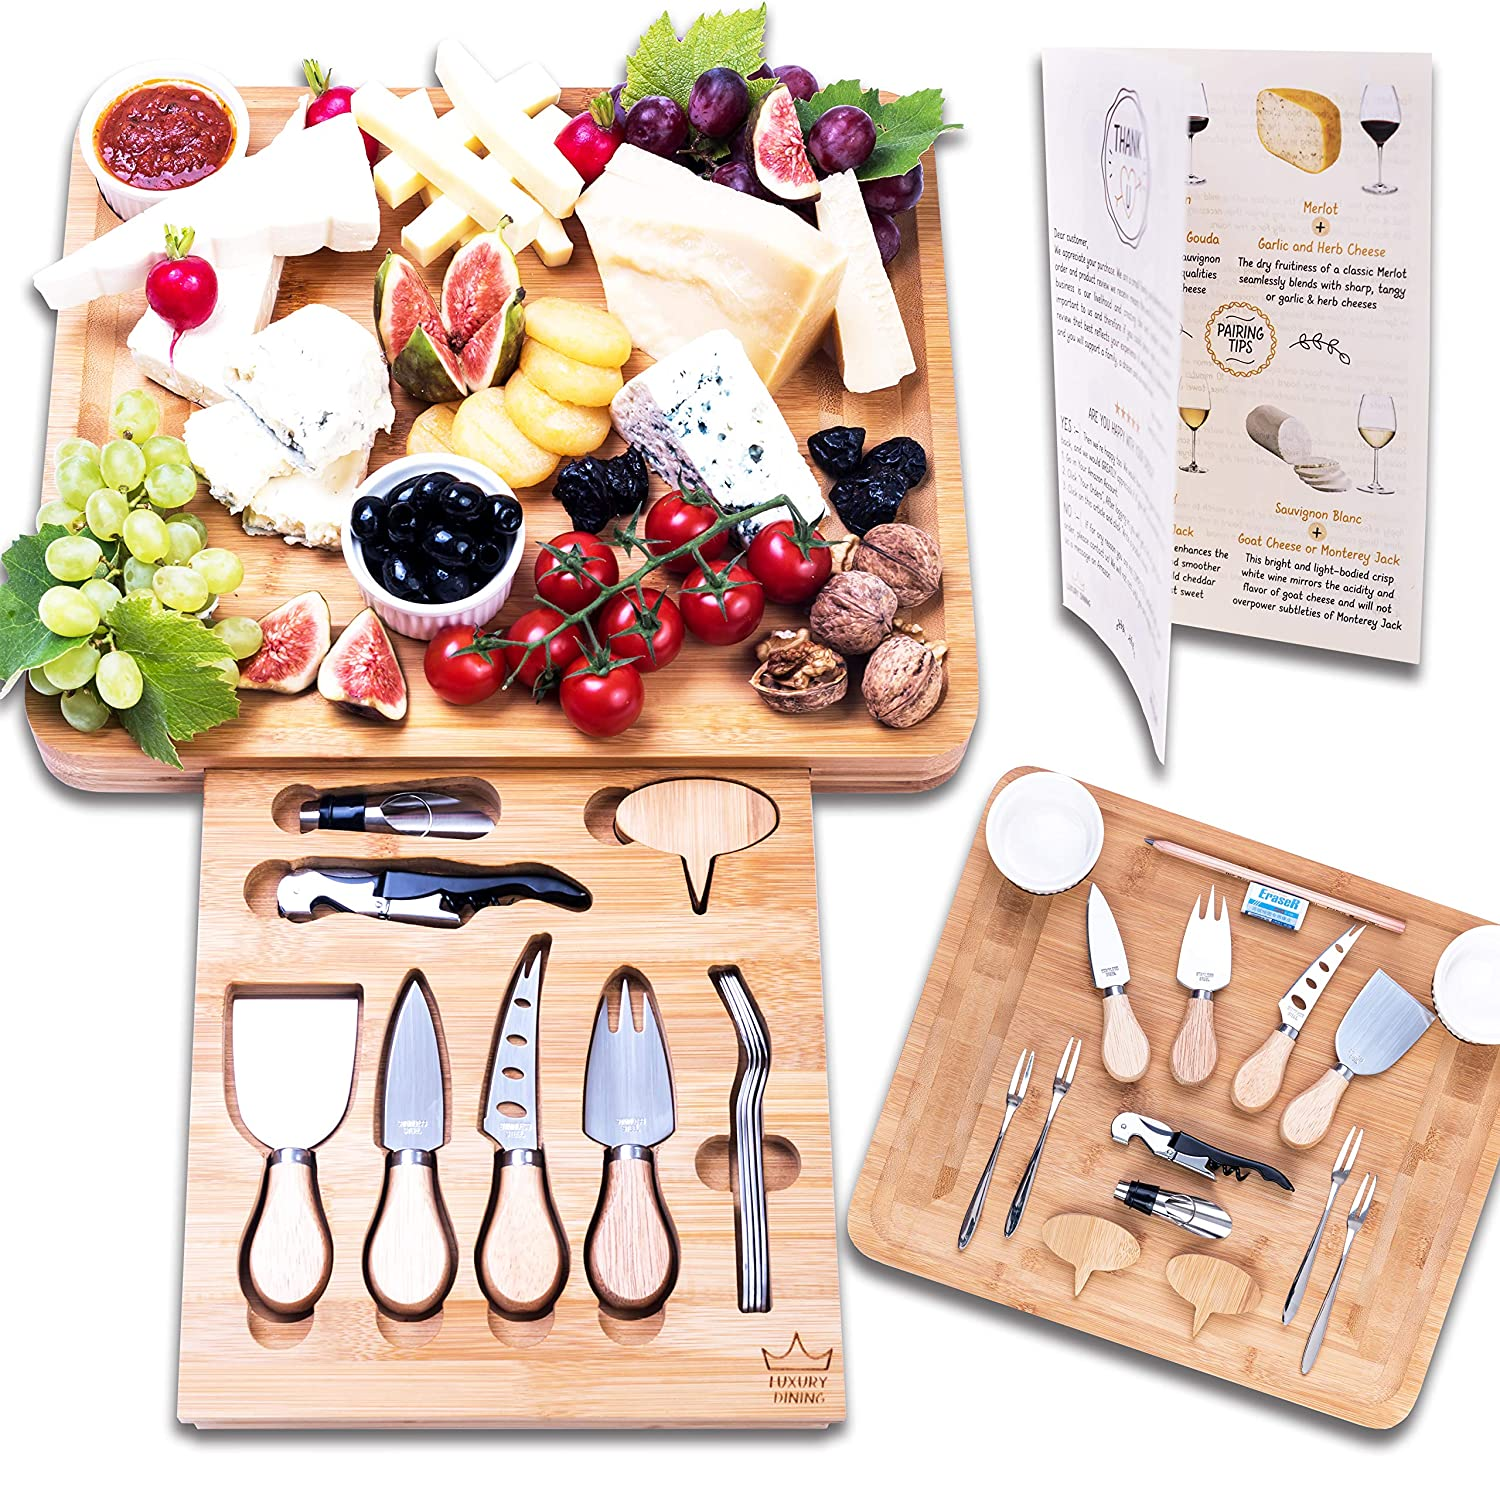 Luxury Dining 16-piece Cheese Board with Cutlery Set, Wooden Charcuterie Cutting and...